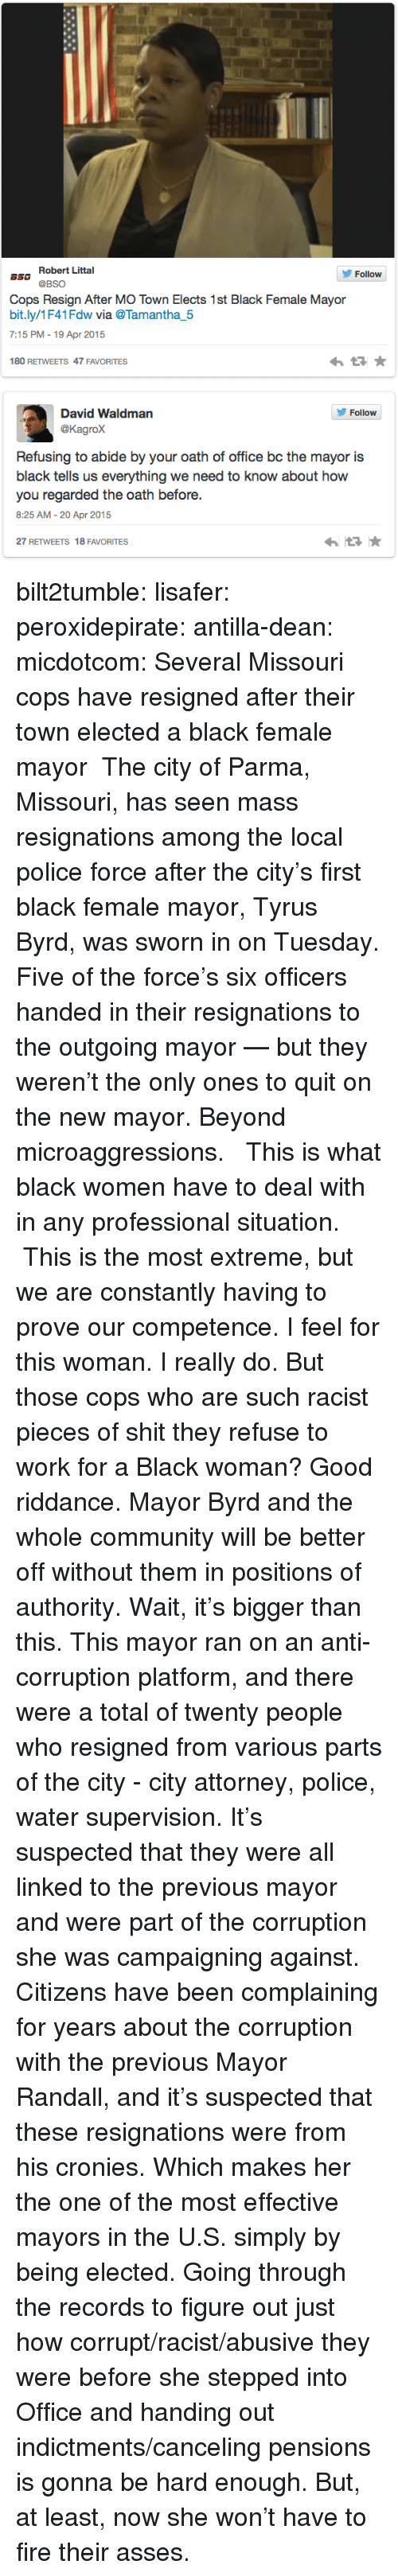 Sworn: Robert Littal  Follow  aso @BSO  Cops Resign After MO Town Elects 1st Black Female Mayor  bit.ly/1F41Fdw wia @Tamantha5  7:15 PM - 19 Apr 2015  わ ★  180 RETWEETS 47 FAVORITES   David Waldman  @Kagrox  Follow  Refusing to abide by your oath of office bc the mayor is  black tells us everything we need to know about how  you regarded the oath before.  8:25 AM-20 Apr 2015  27 RETWEETS 18 FAVORITES bilt2tumble:  lisafer:  peroxidepirate:  antilla-dean:   micdotcom:    Several Missouri cops have resigned after their town elected a black female mayor  The city of Parma, Missouri, has seen mass resignations  among the local police force after the city's first black female  mayor, Tyrus Byrd, was sworn in on Tuesday. Five of the force's six officers handed in their resignations to the outgoing mayor — but they weren't the only ones to quit on the new mayor.   Beyond microaggressions.   This is what black women have to deal with in any professional situation.  This is the most extreme, but we are constantly having to prove our competence.   I feel for this woman. I really do.  But those cops who are such racist pieces of shit they refuse to work for a Black woman? Good riddance. Mayor Byrd and the whole community will be better off without them in positions of authority.  Wait, it's bigger than this. This mayor ran on an anti-corruption platform, and there were a total of twenty people who resigned from various parts of the city - city attorney, police, water supervision.  It's suspected that they were all linked to the previous mayor and were part of the corruption she was campaigning against. Citizens have been complaining for years about the corruption with the previous Mayor Randall, and it's suspected that these resignations were from his cronies.  Which makes her the one of the most effective mayors in the U.S. simply by being elected.   Going through the records to figure out just how corrupt/racist/abusive they were before she stepped into Office and handing out indictments/canceling pensions is gonna be hard enough. But, at least, now she won't have to fire their asses.